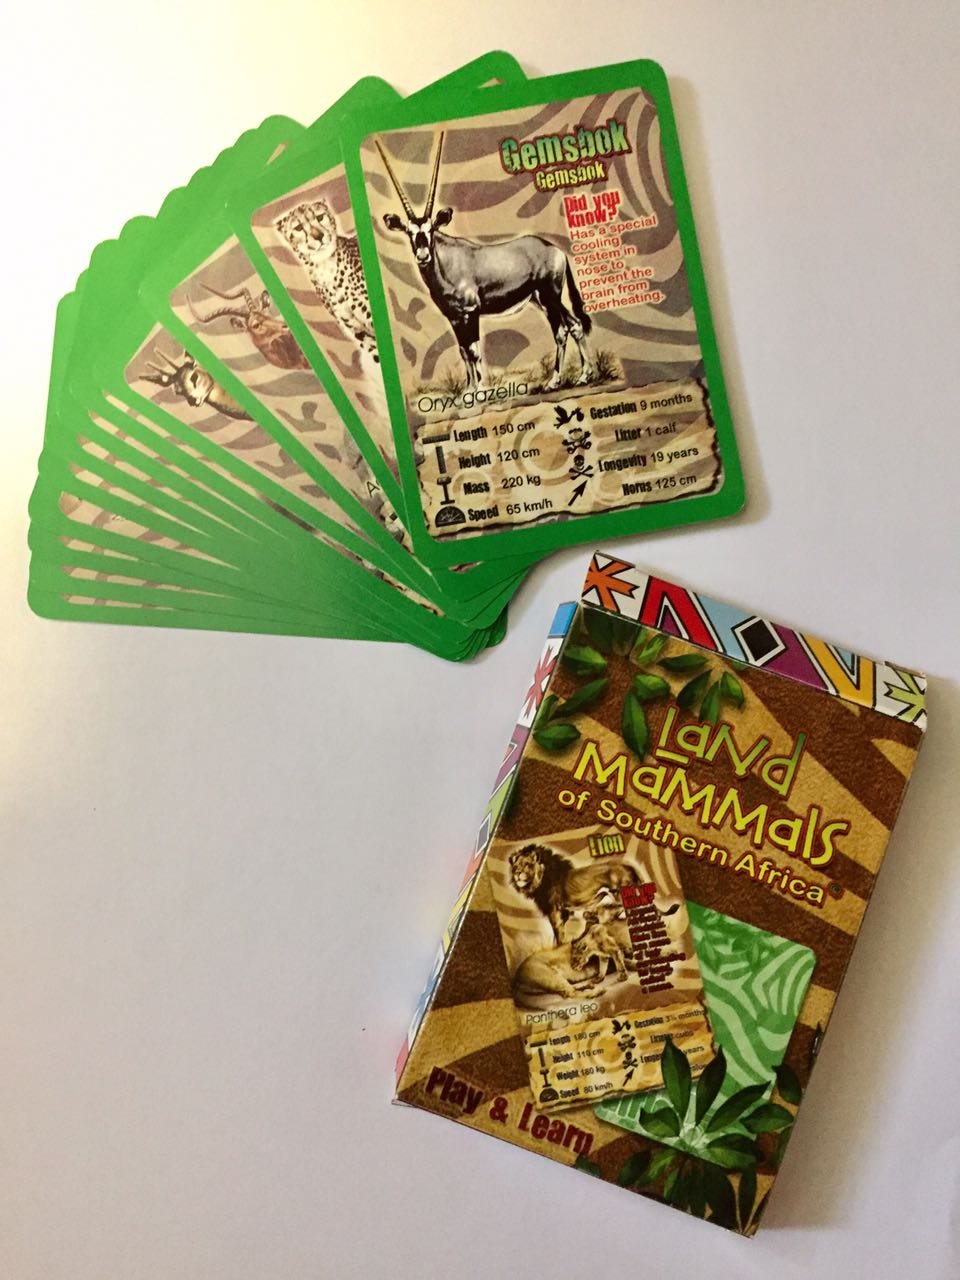 Trump card game: Land Mammals of Southern Africa. Play and Learn, great fun! 500 packets.